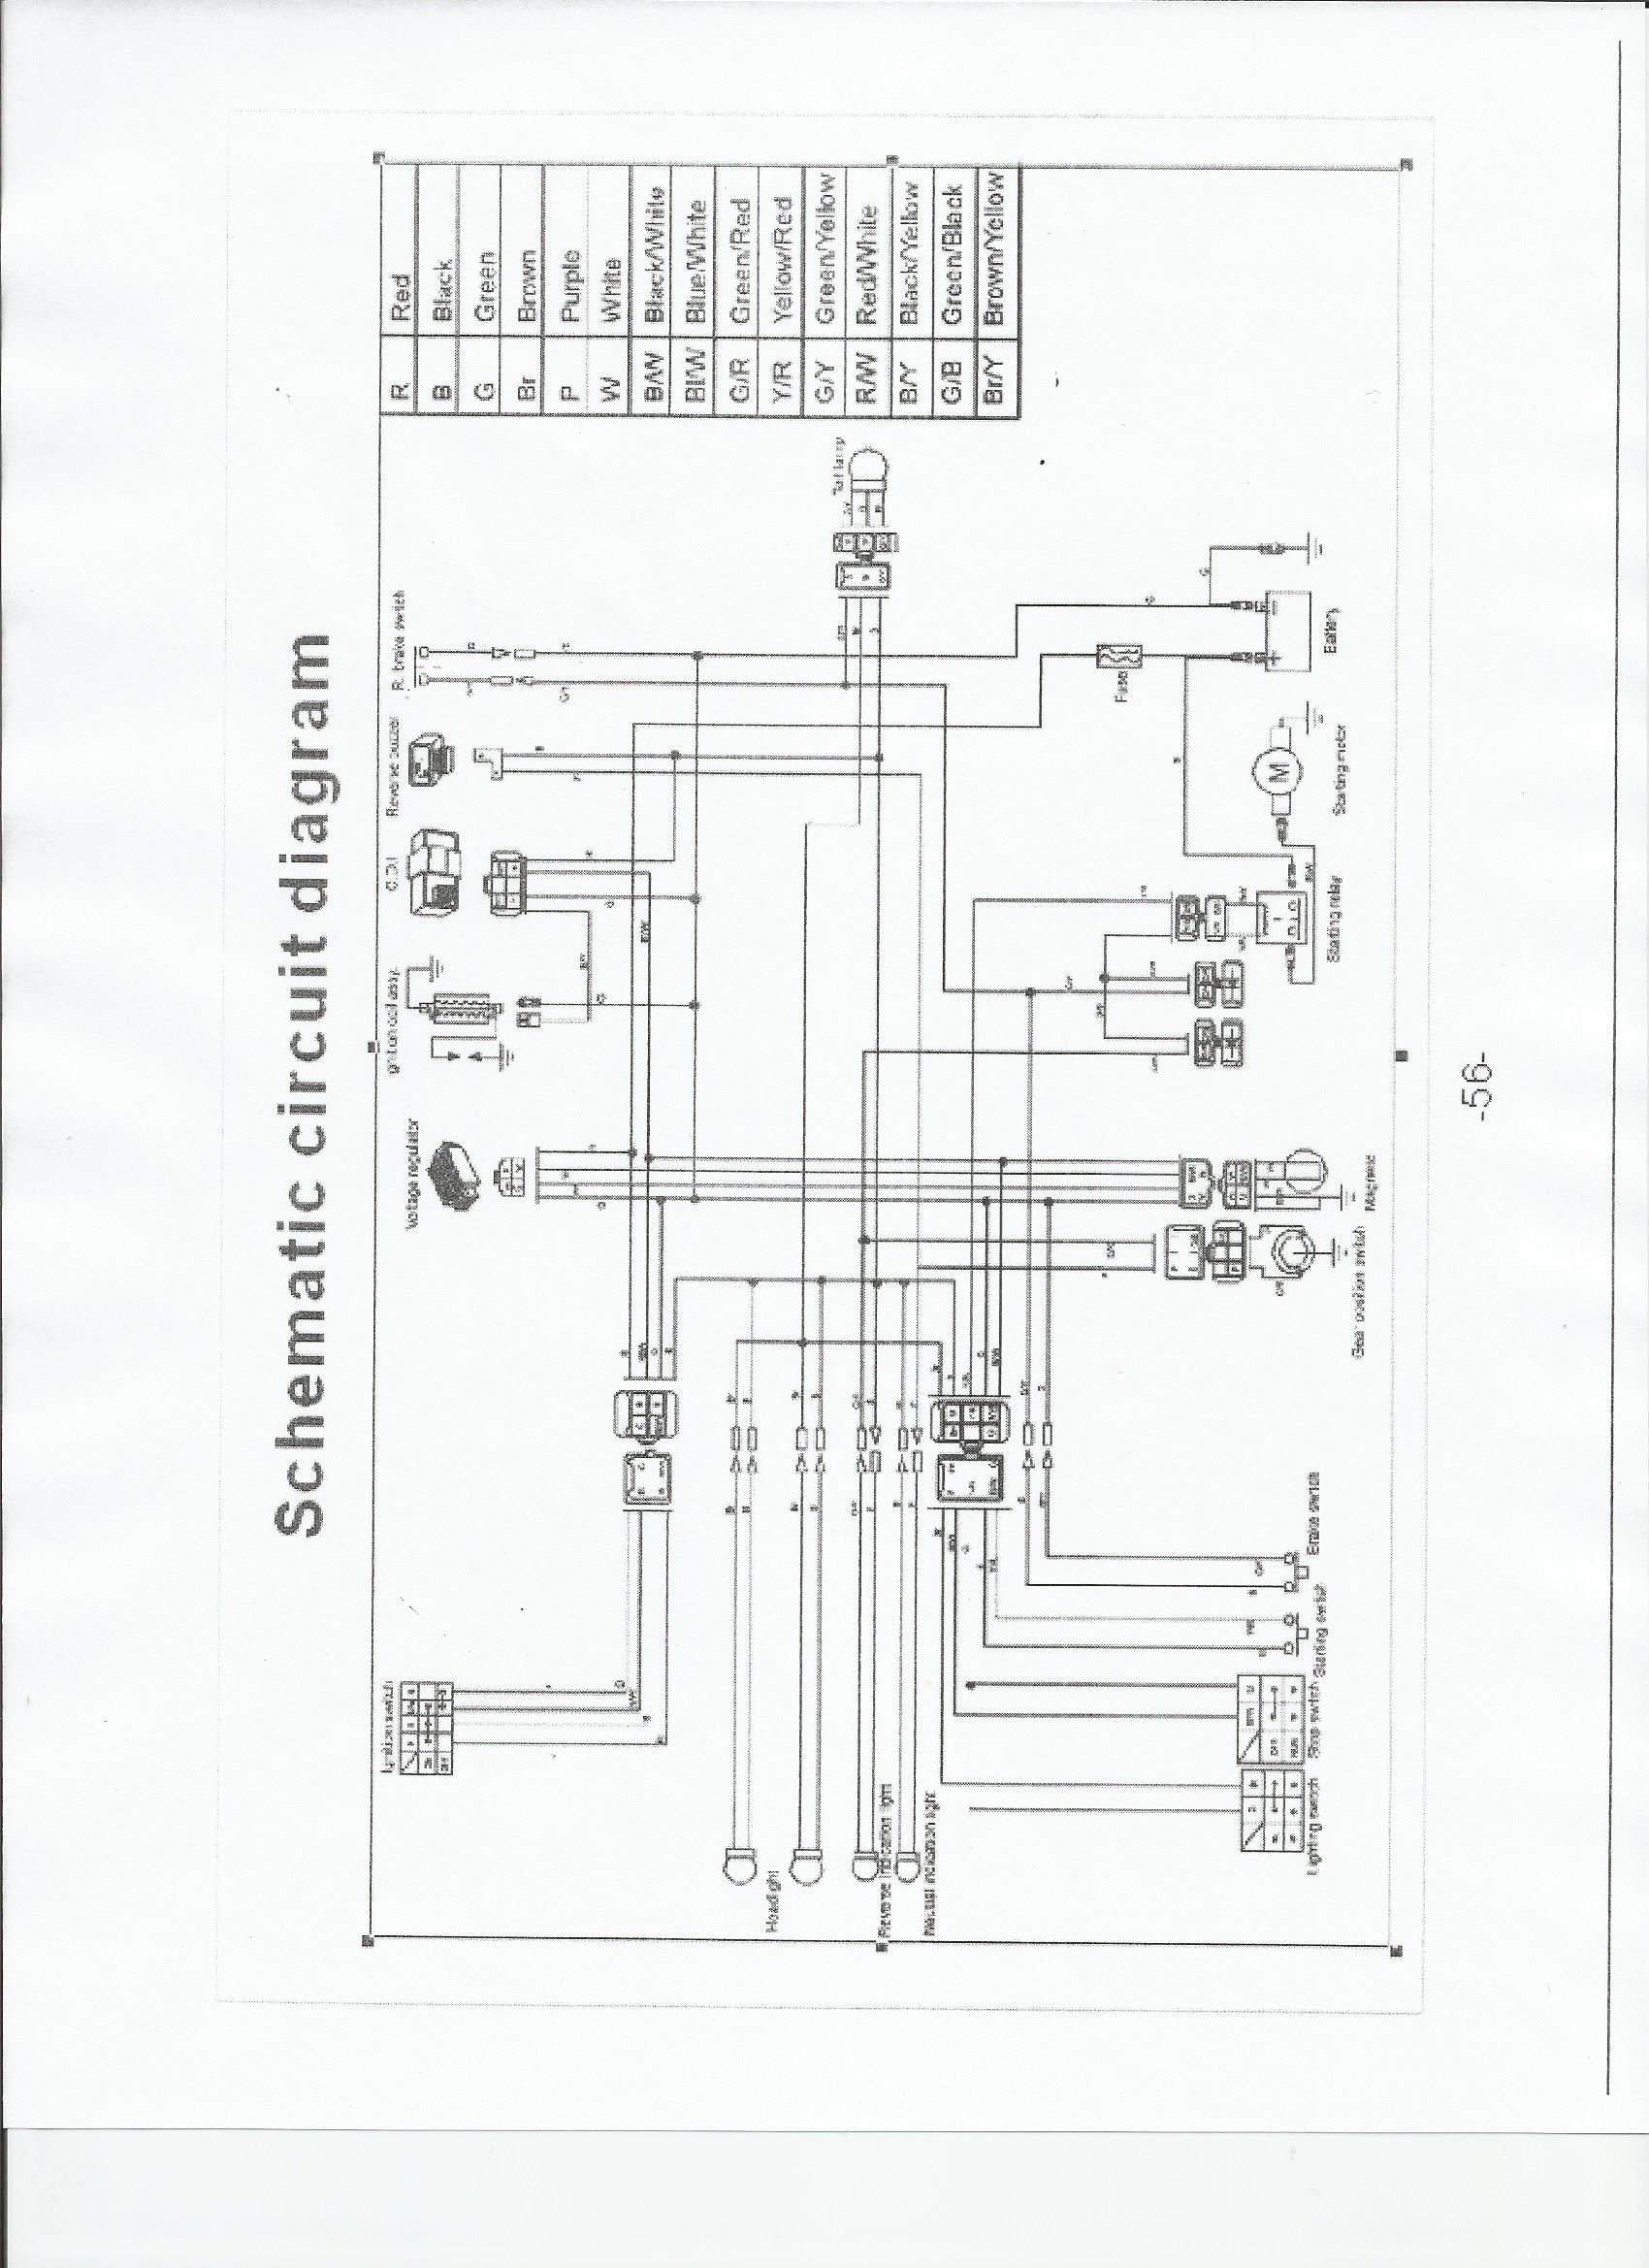 tao tao wiring schematic taotao mini and youth atv wiring schematic familygokarts support 50cc atv wiring diagram at honlapkeszites.co